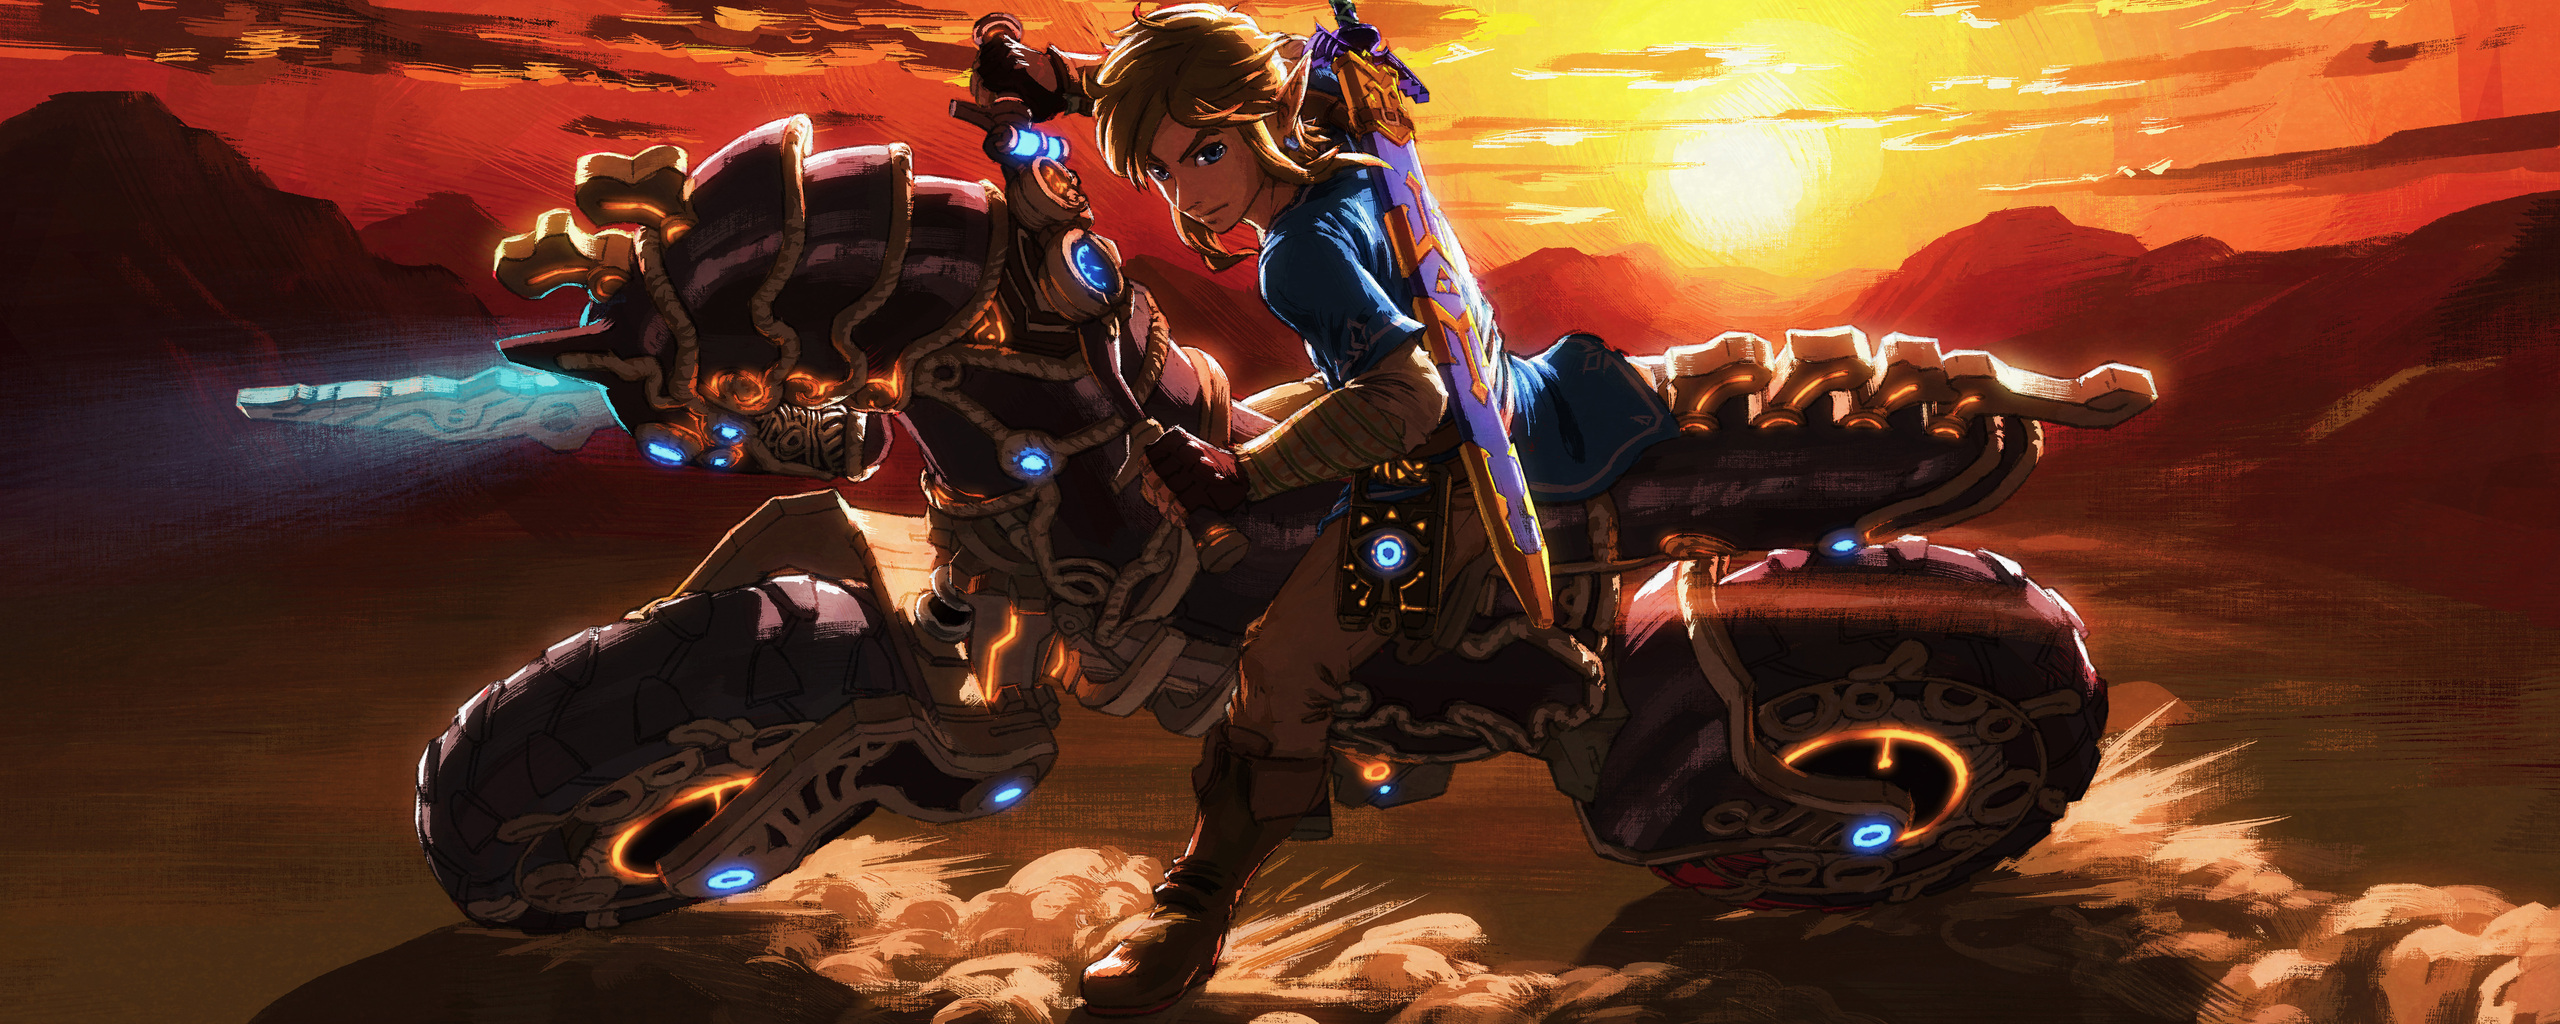 Zelda Breath Of The Wild Master Cycle: 2560x1024 The Master Cycle Zero The Legend Of Zelda Breath